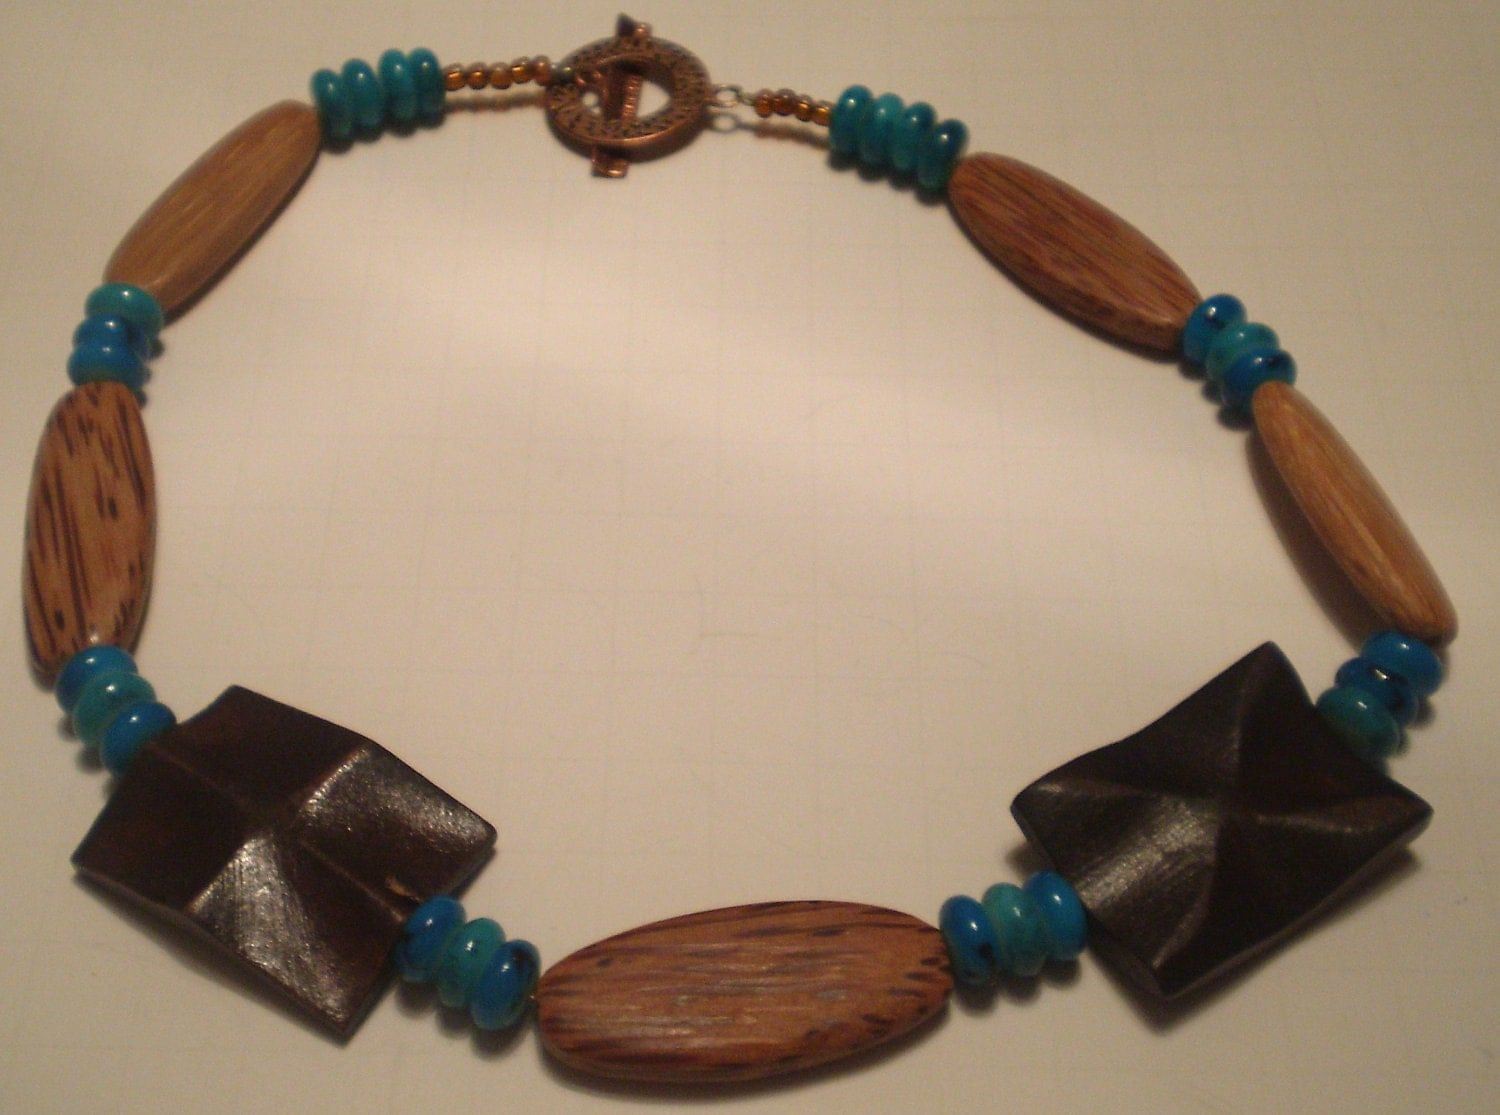 Necklace and Earring Set Southwestern Medium Brown Wood and Turquoise Glass